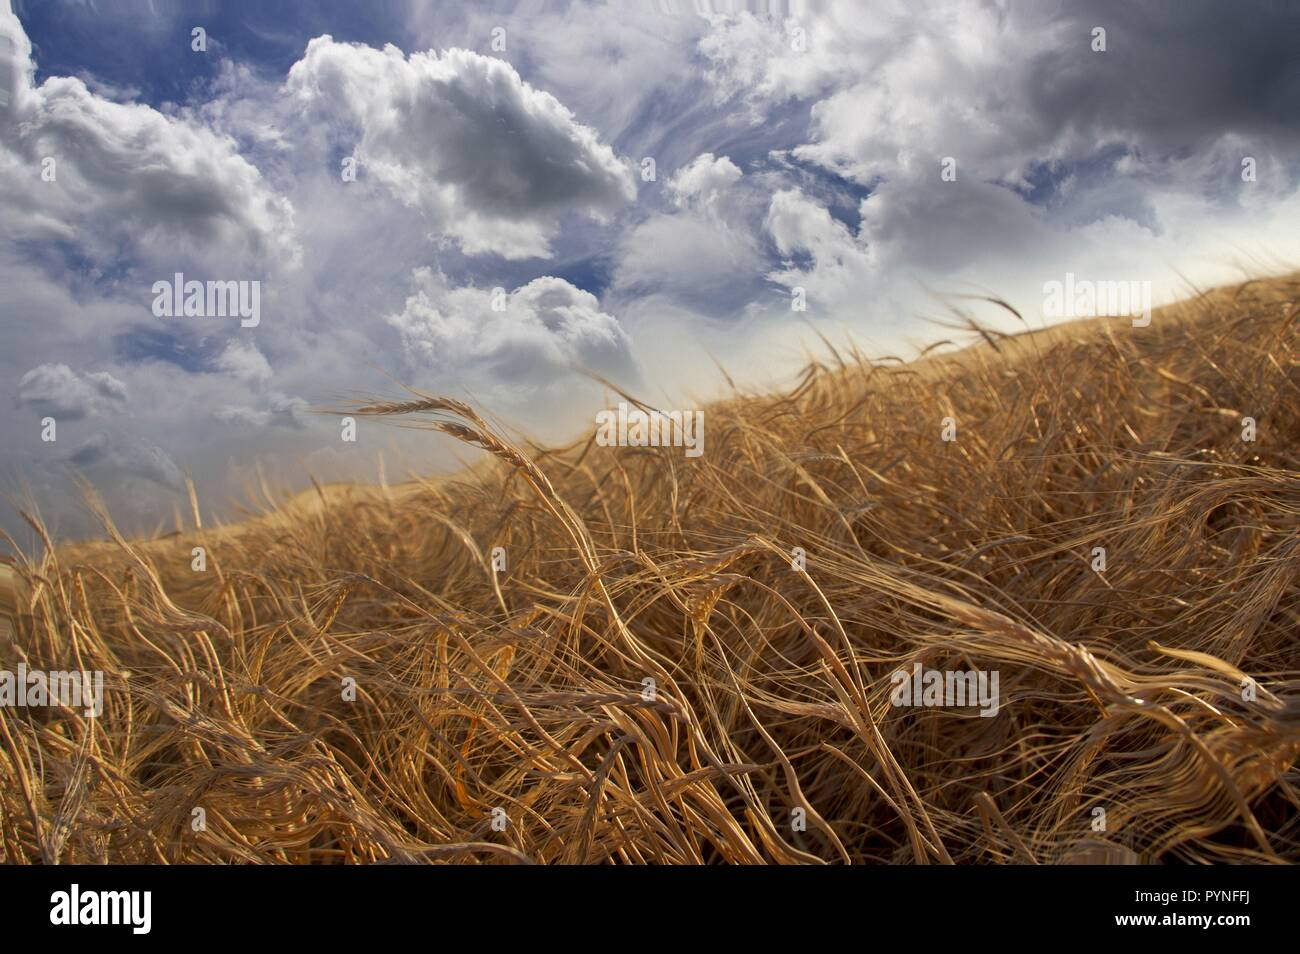 Impressionism. Painting of field of wheat. - Stock Image